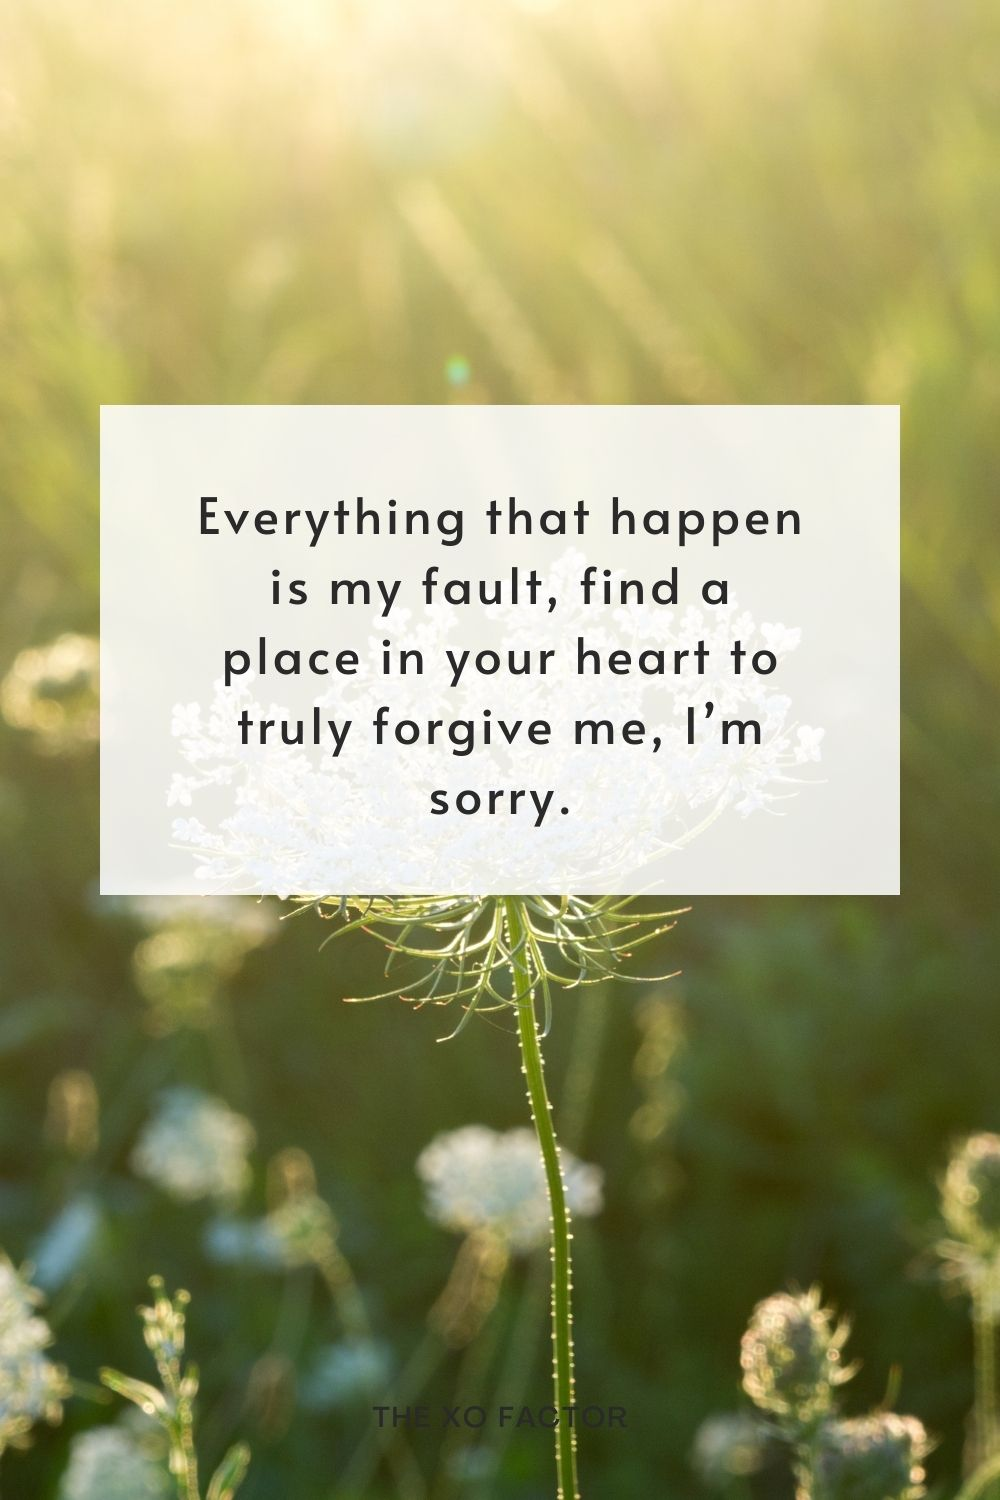 Everything that happen is my fault, find a place in your heart to truly forgive me, I'm sorry.